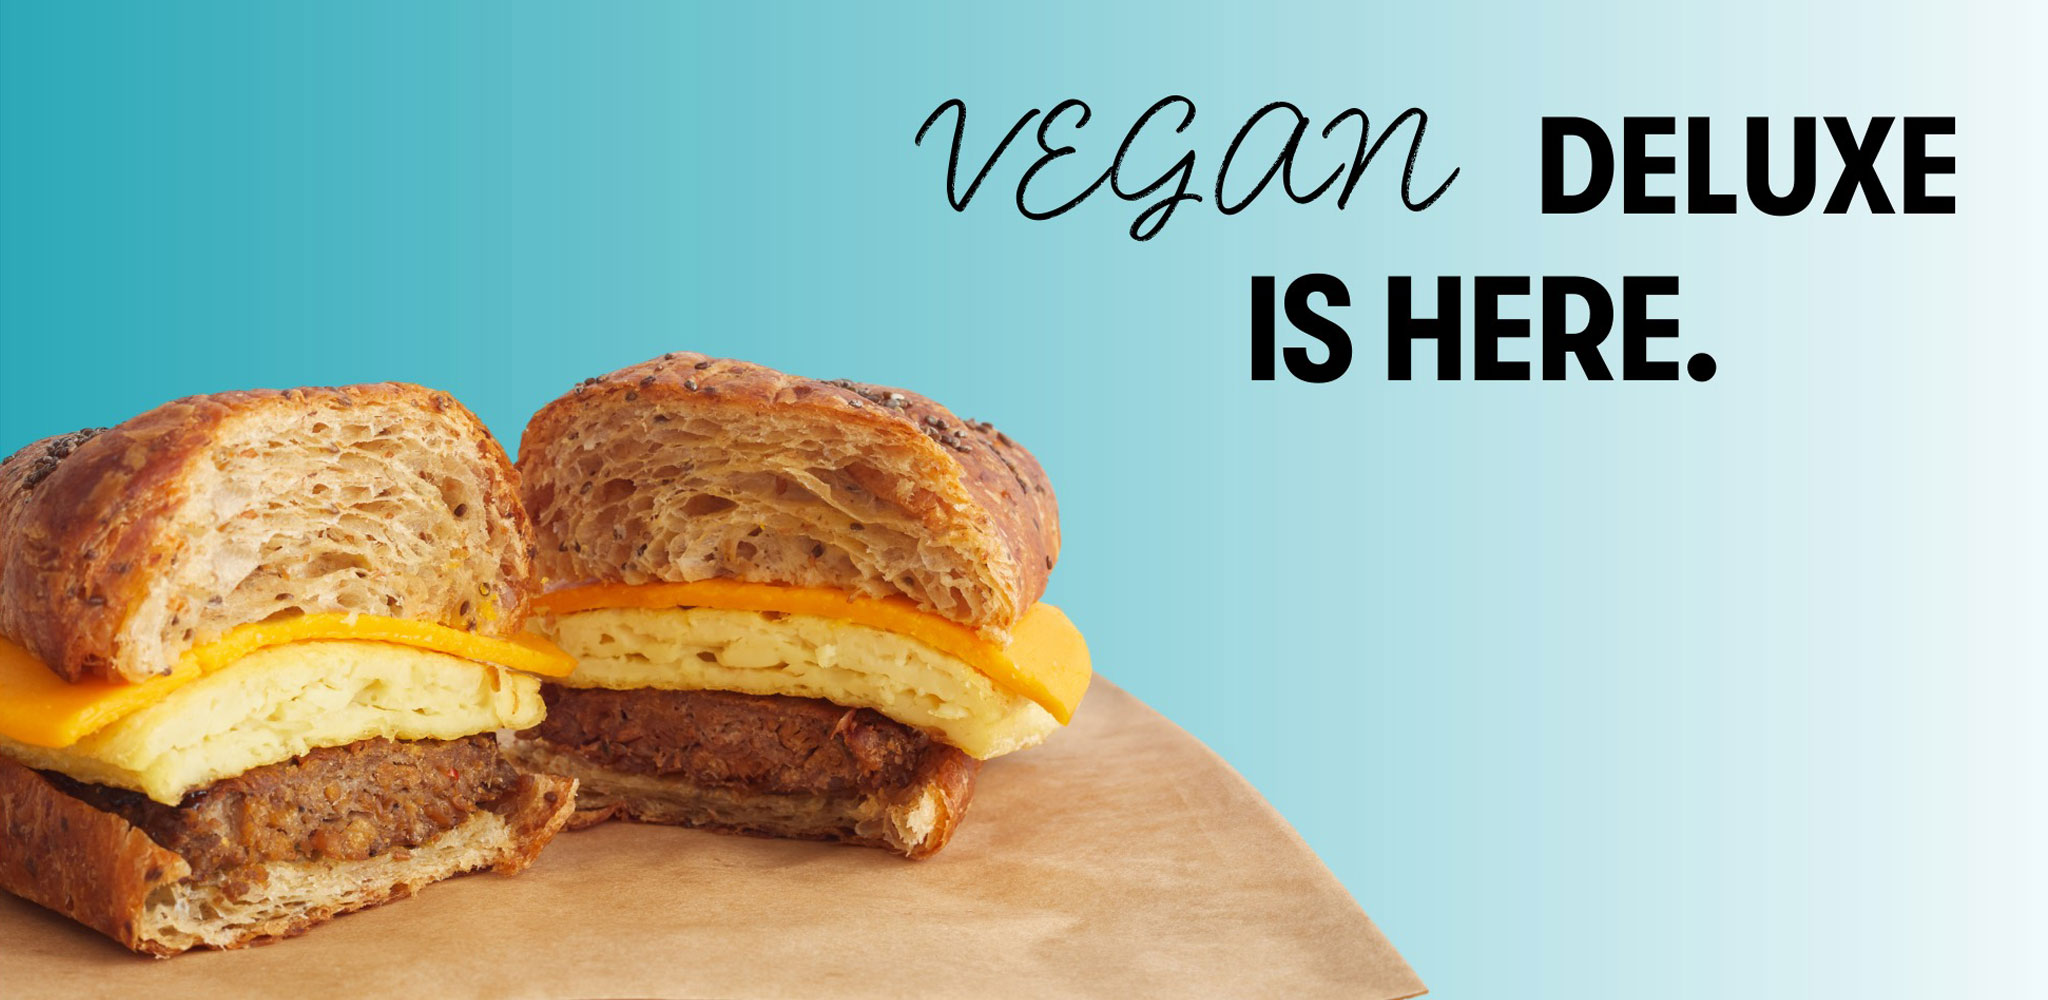 Try our new Vegan Deluxe breakfast sandwich